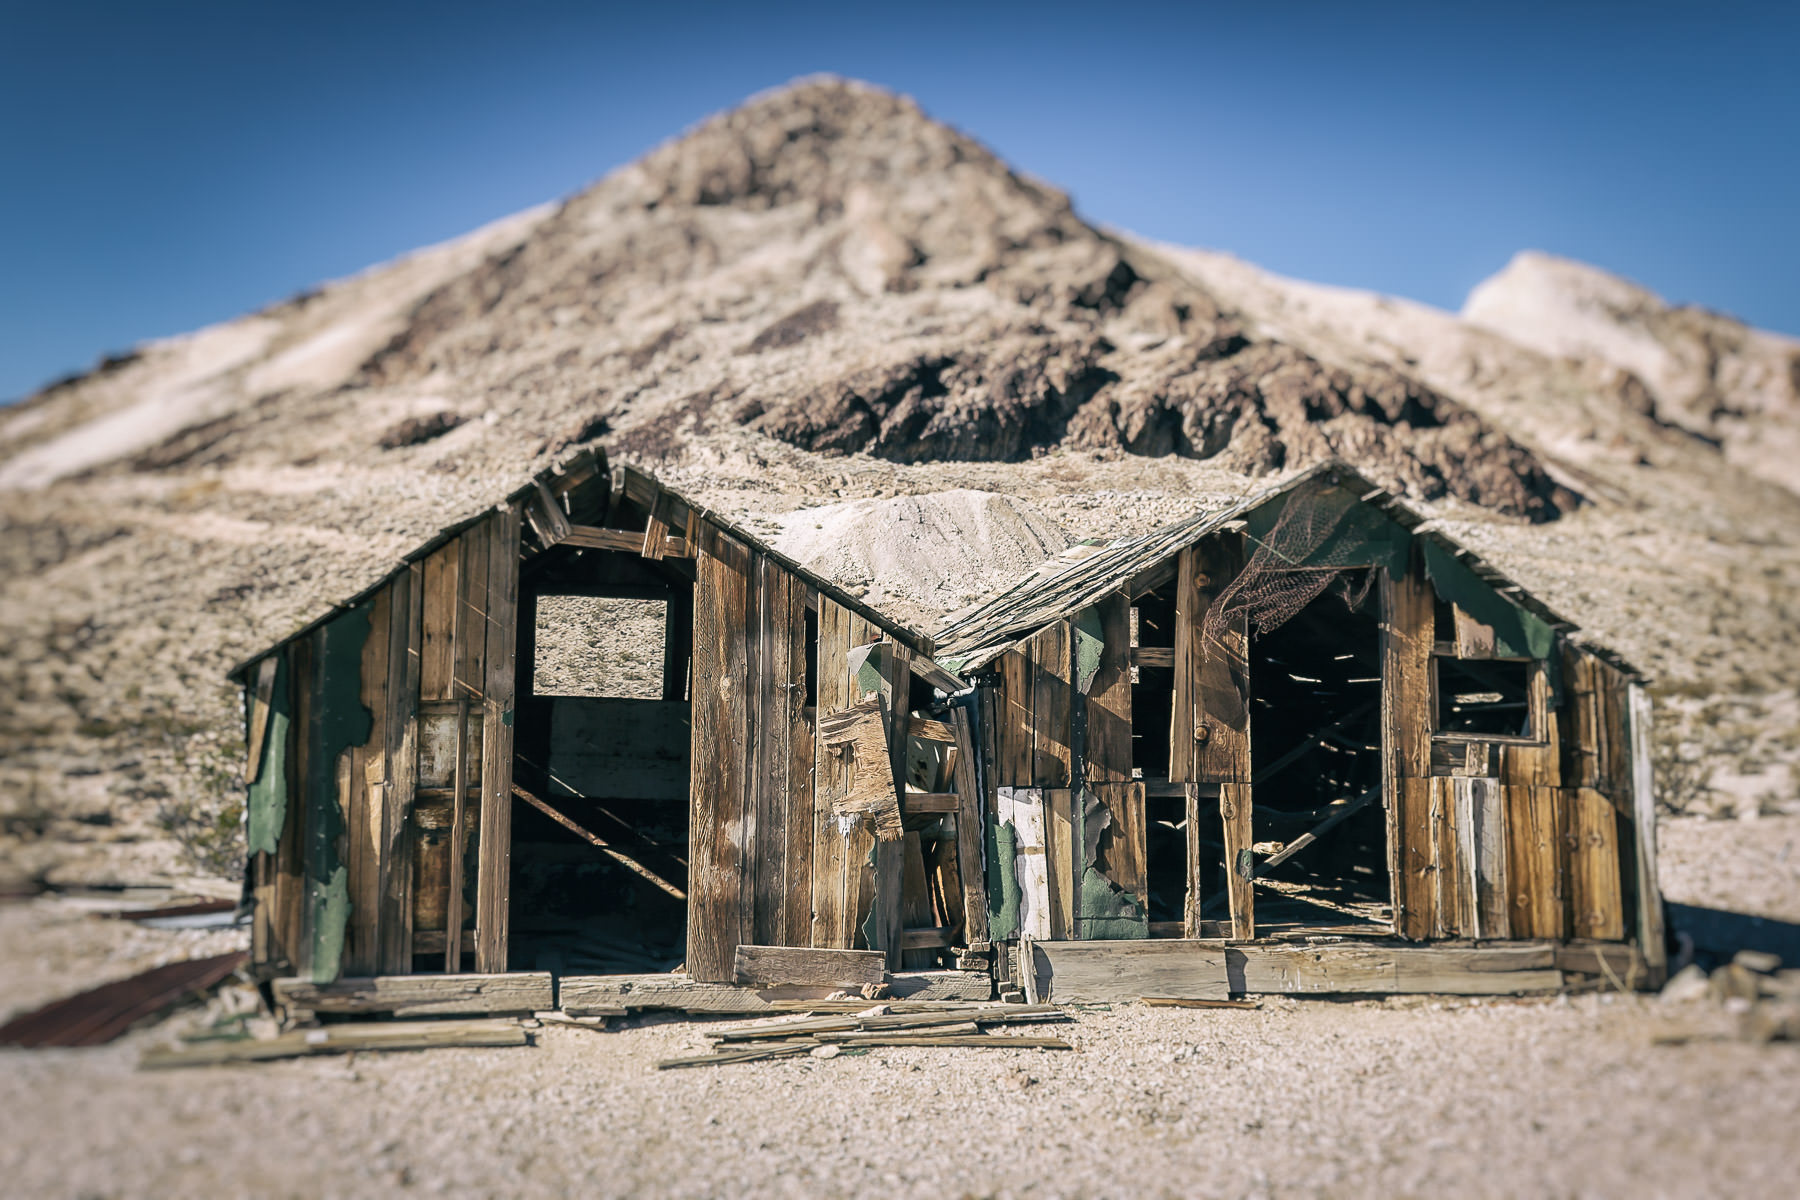 A pair of ancient shacks decay under the Nevada sun in the ghost town of Rhyolite.